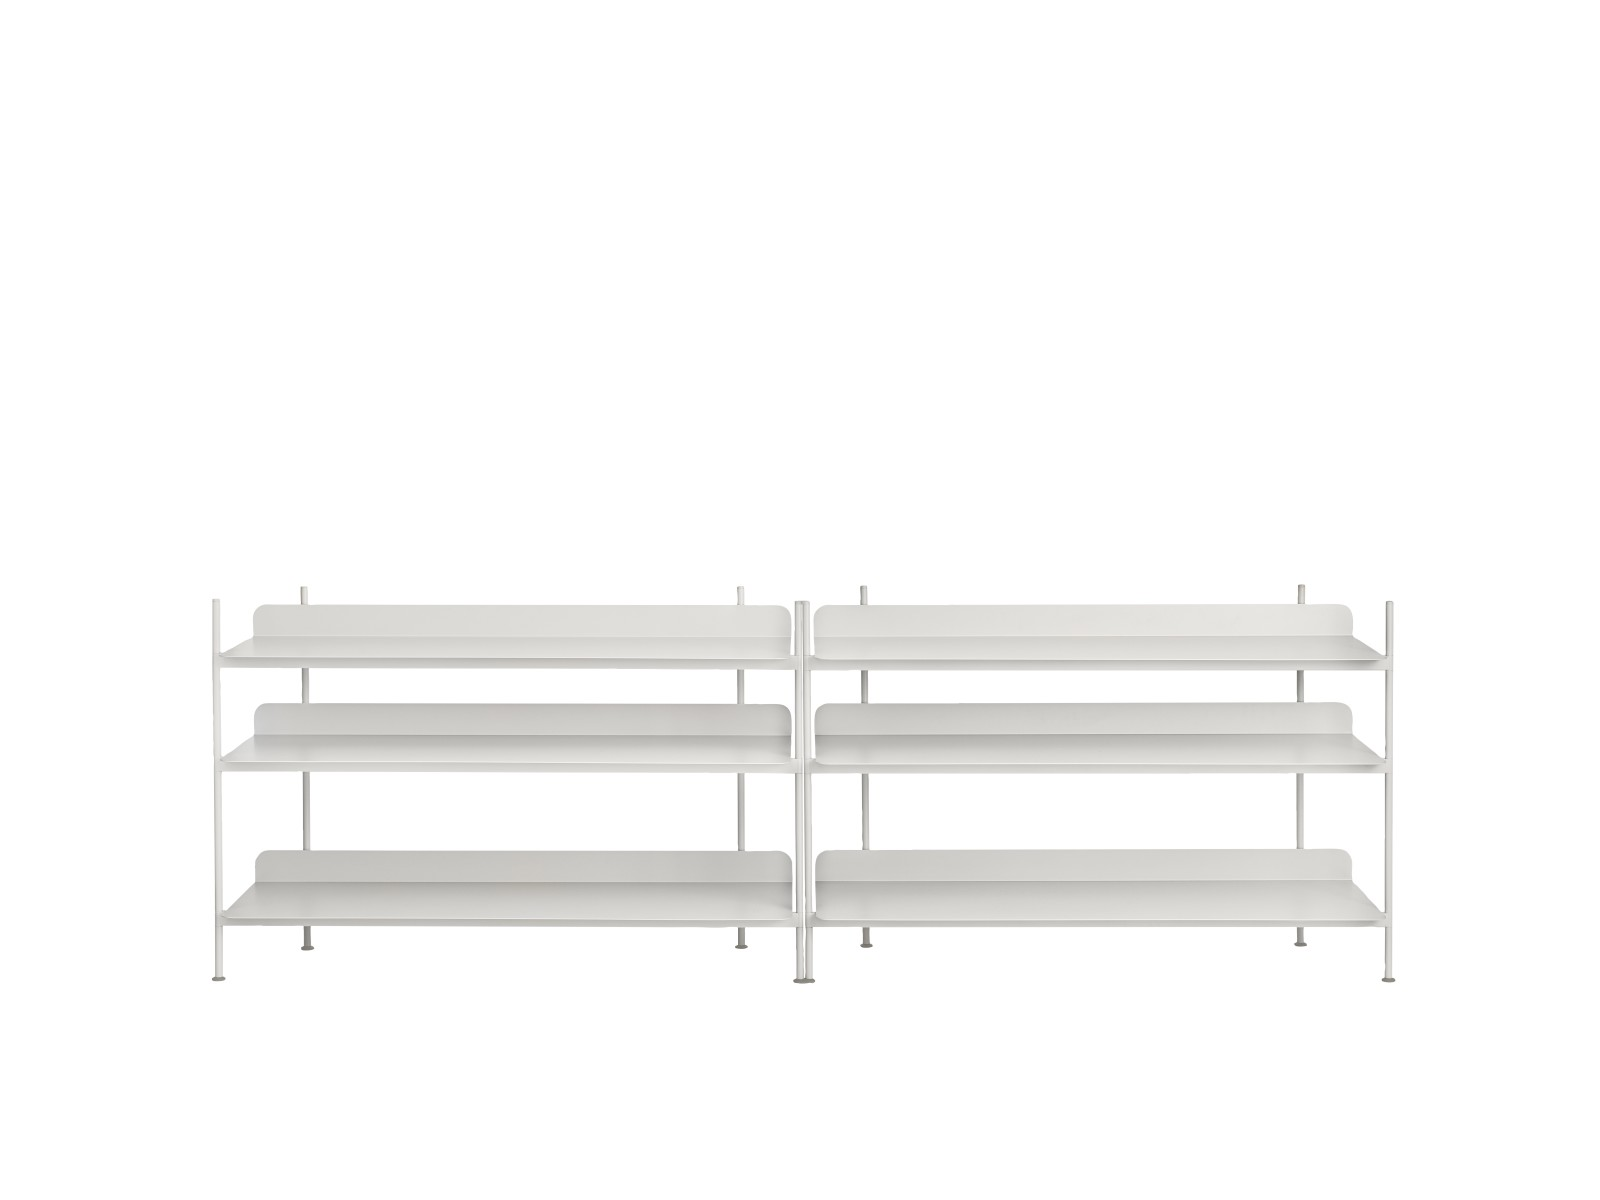 Compile Shelving System Configuration 6, Grey